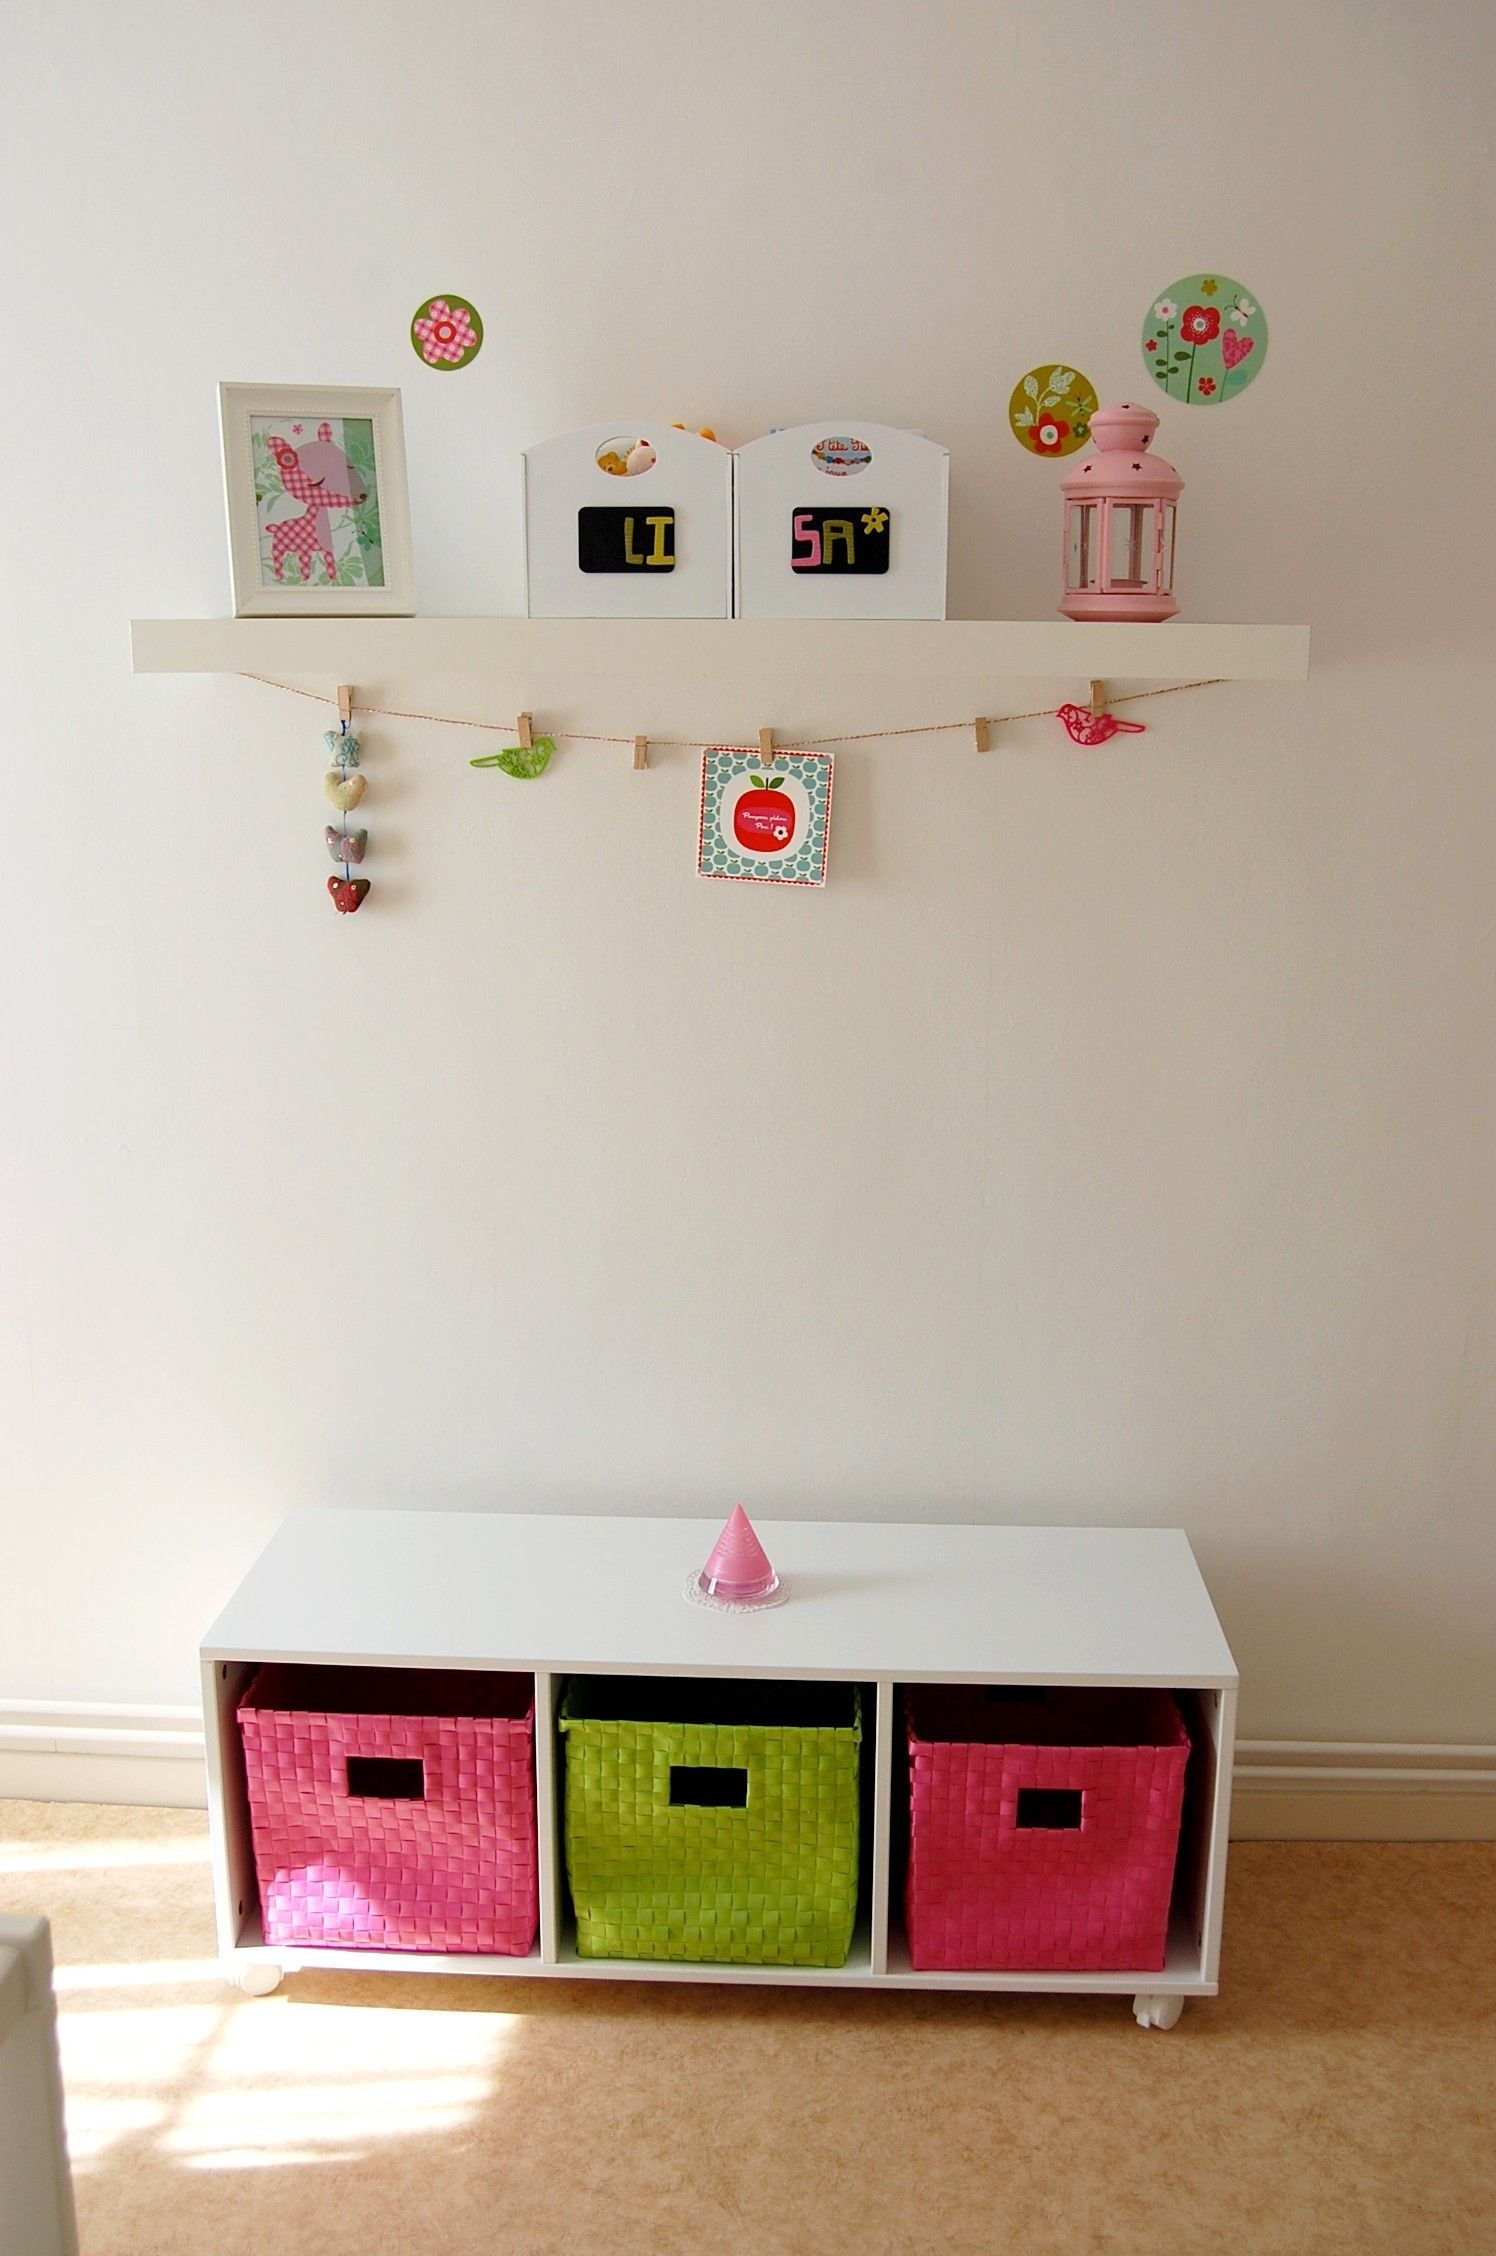 etag re ik a et meuble de rangement verbaudet deco kids pinterest. Black Bedroom Furniture Sets. Home Design Ideas